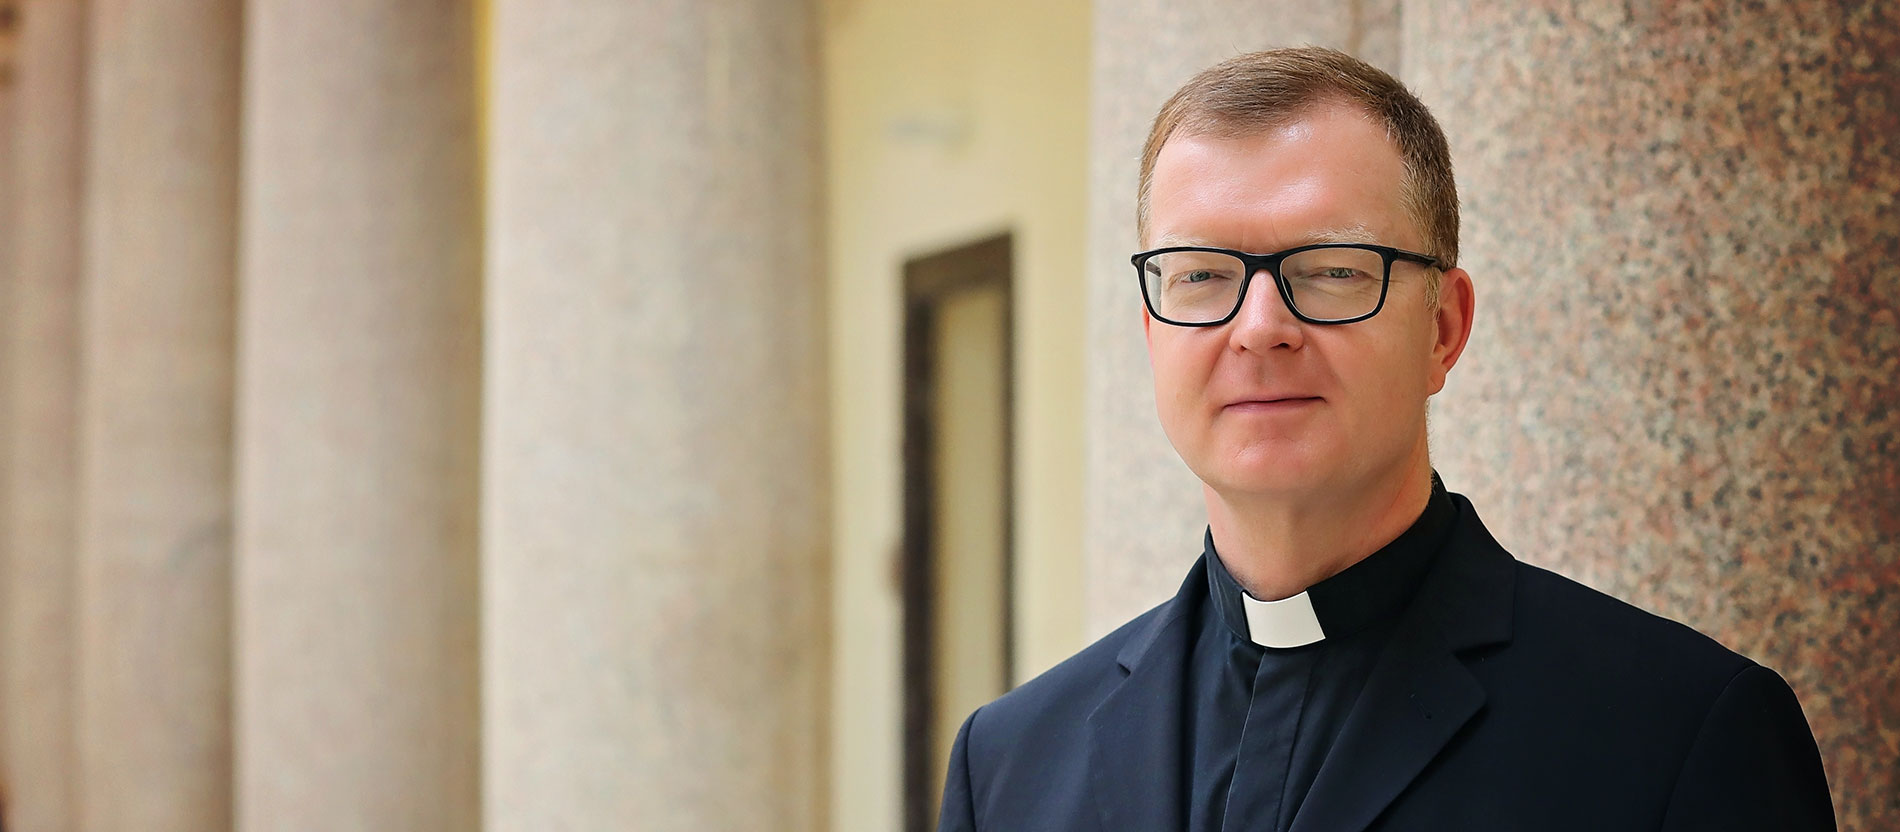 Der Jesuitenpater Hans Zollner ist Leiter des Centre for Child Protection (CCP) in Rom.